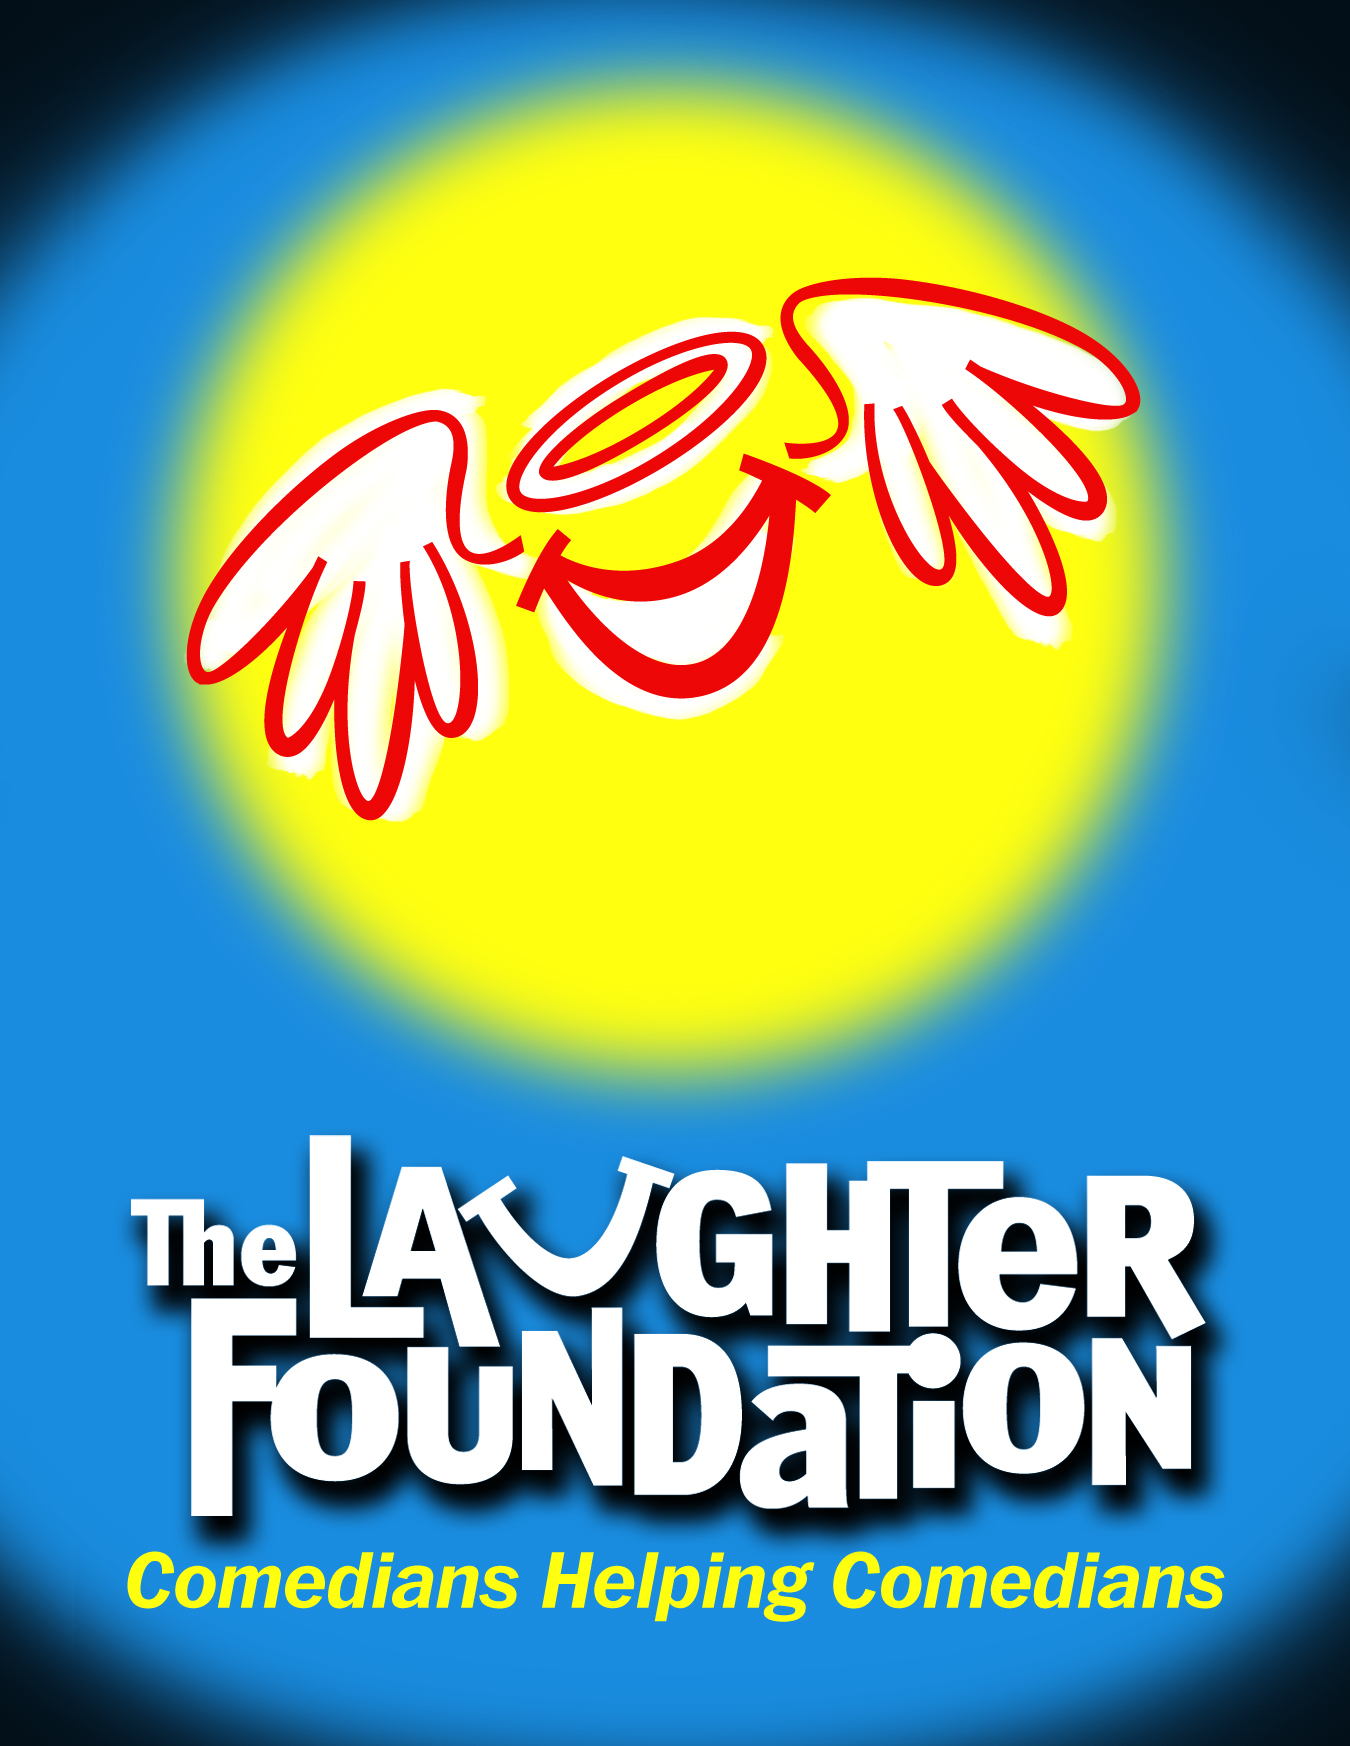 The Laughter Foundation